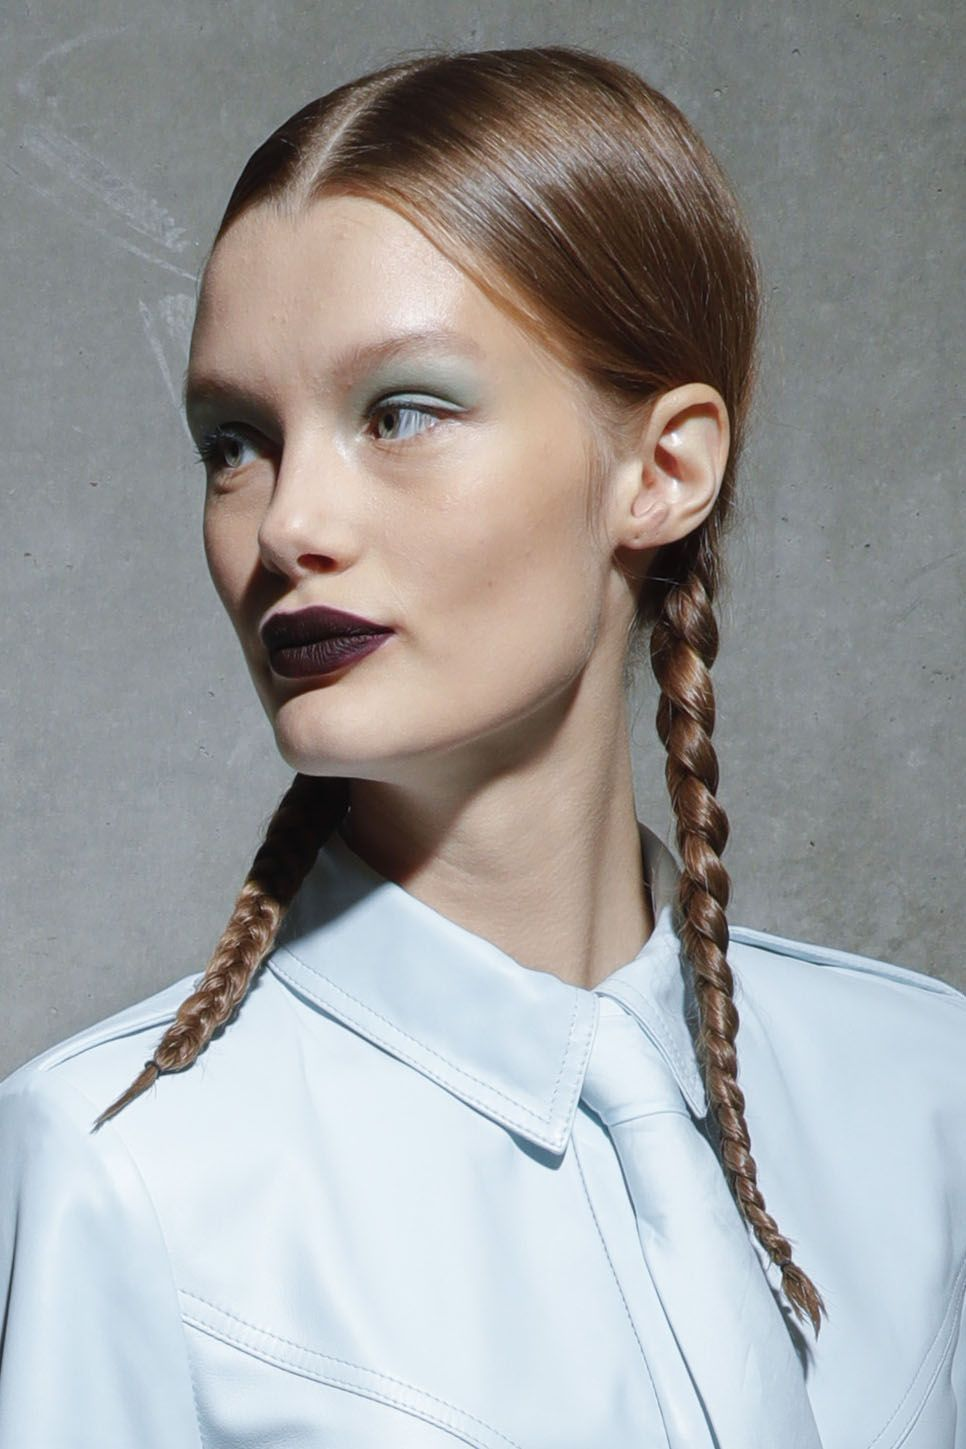 15 spring/summer 15 hair trends to try now